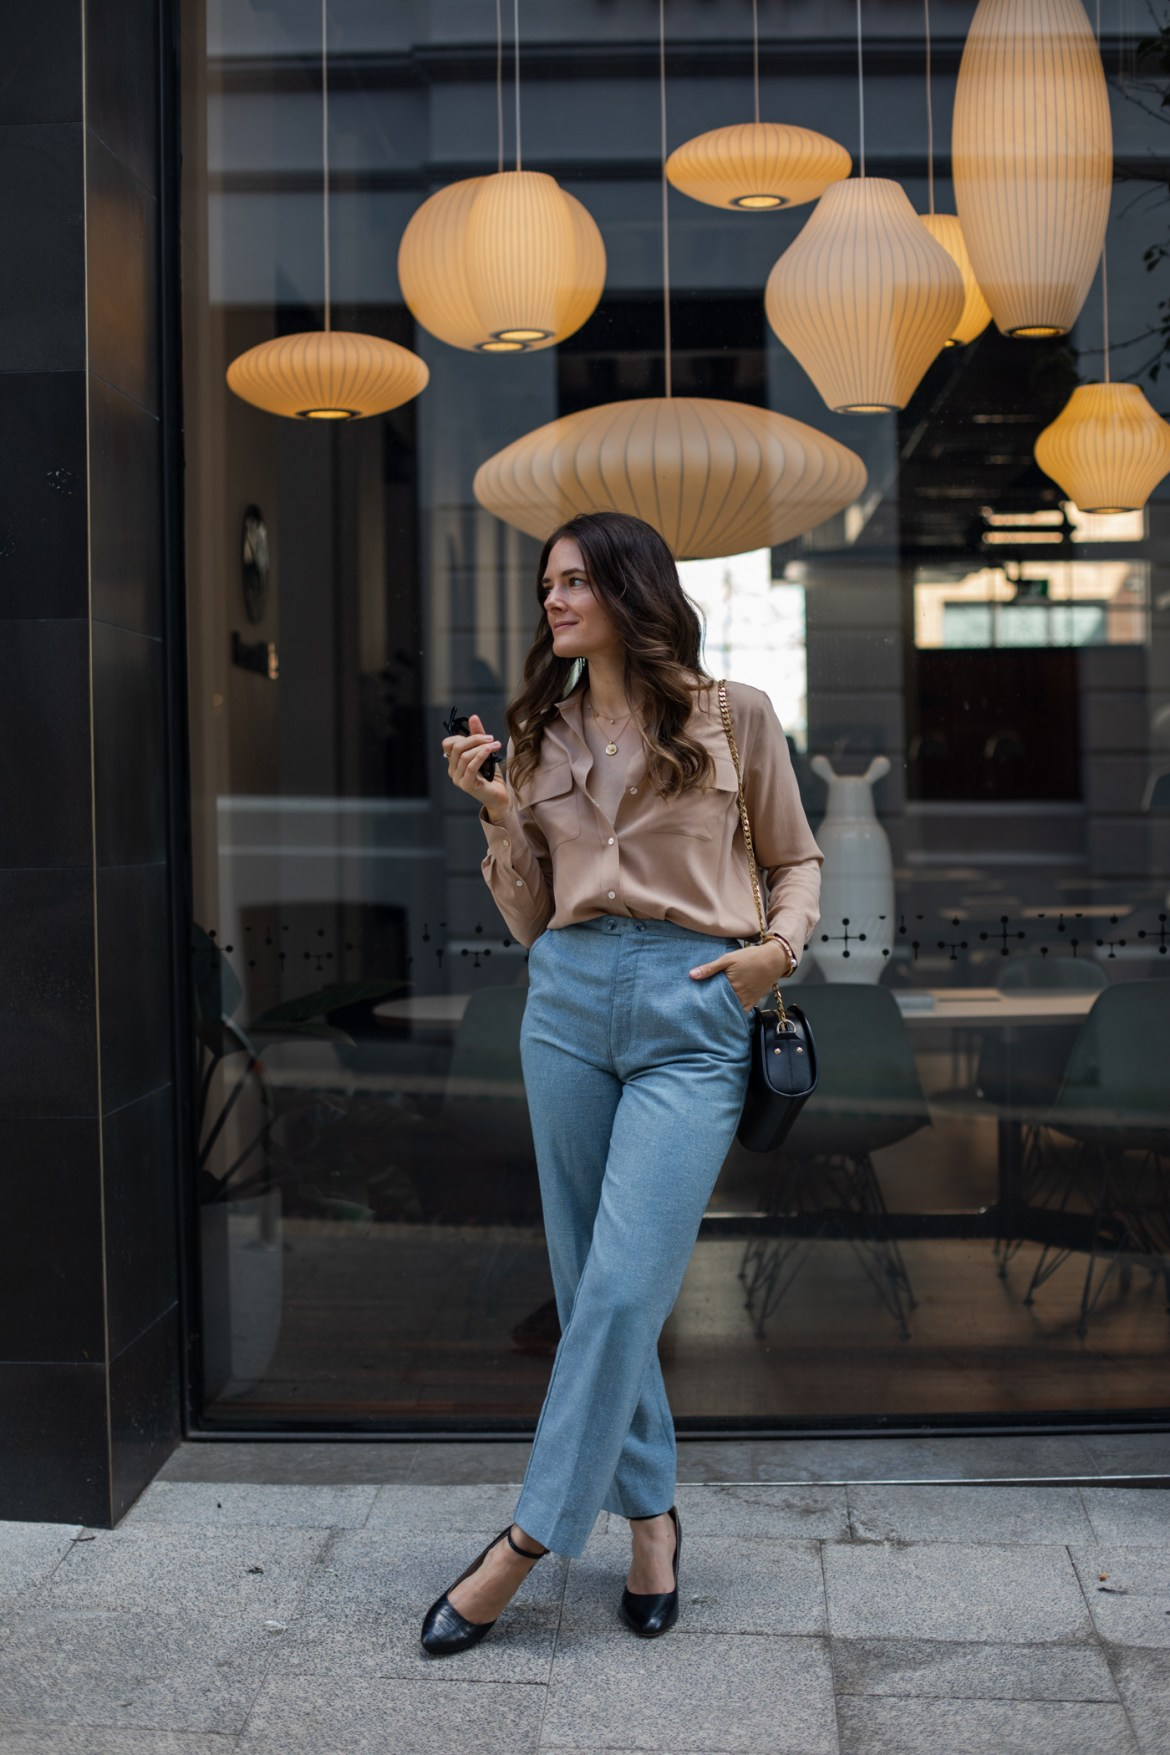 mid-year sale at Shopbop Jenelle from Inspiring Wit fashion blog wearing Equipment silk shirt in beige